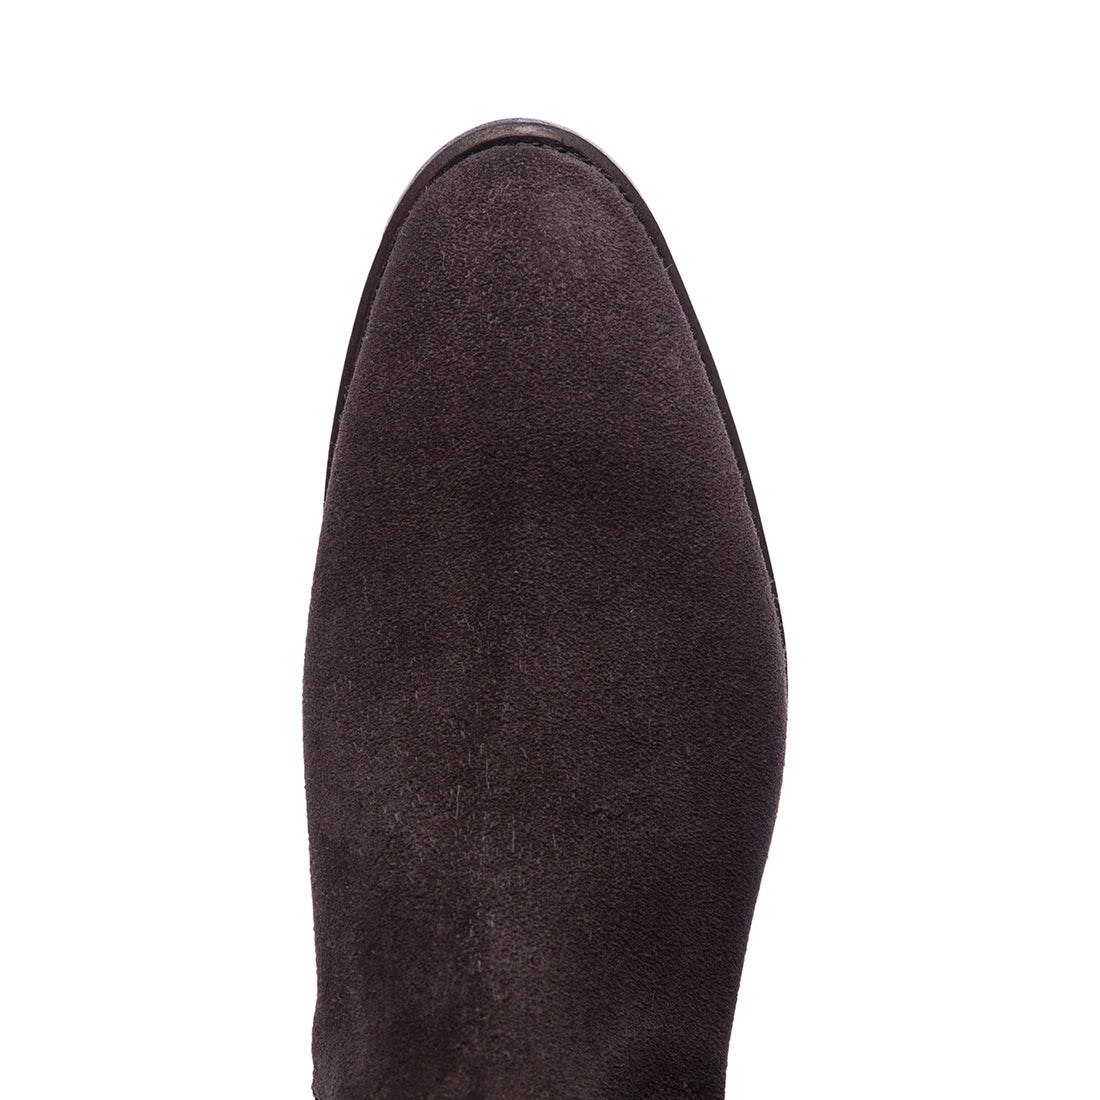 8bbbd62c0c1 Womens Suede Adelaide Boots Chocolate